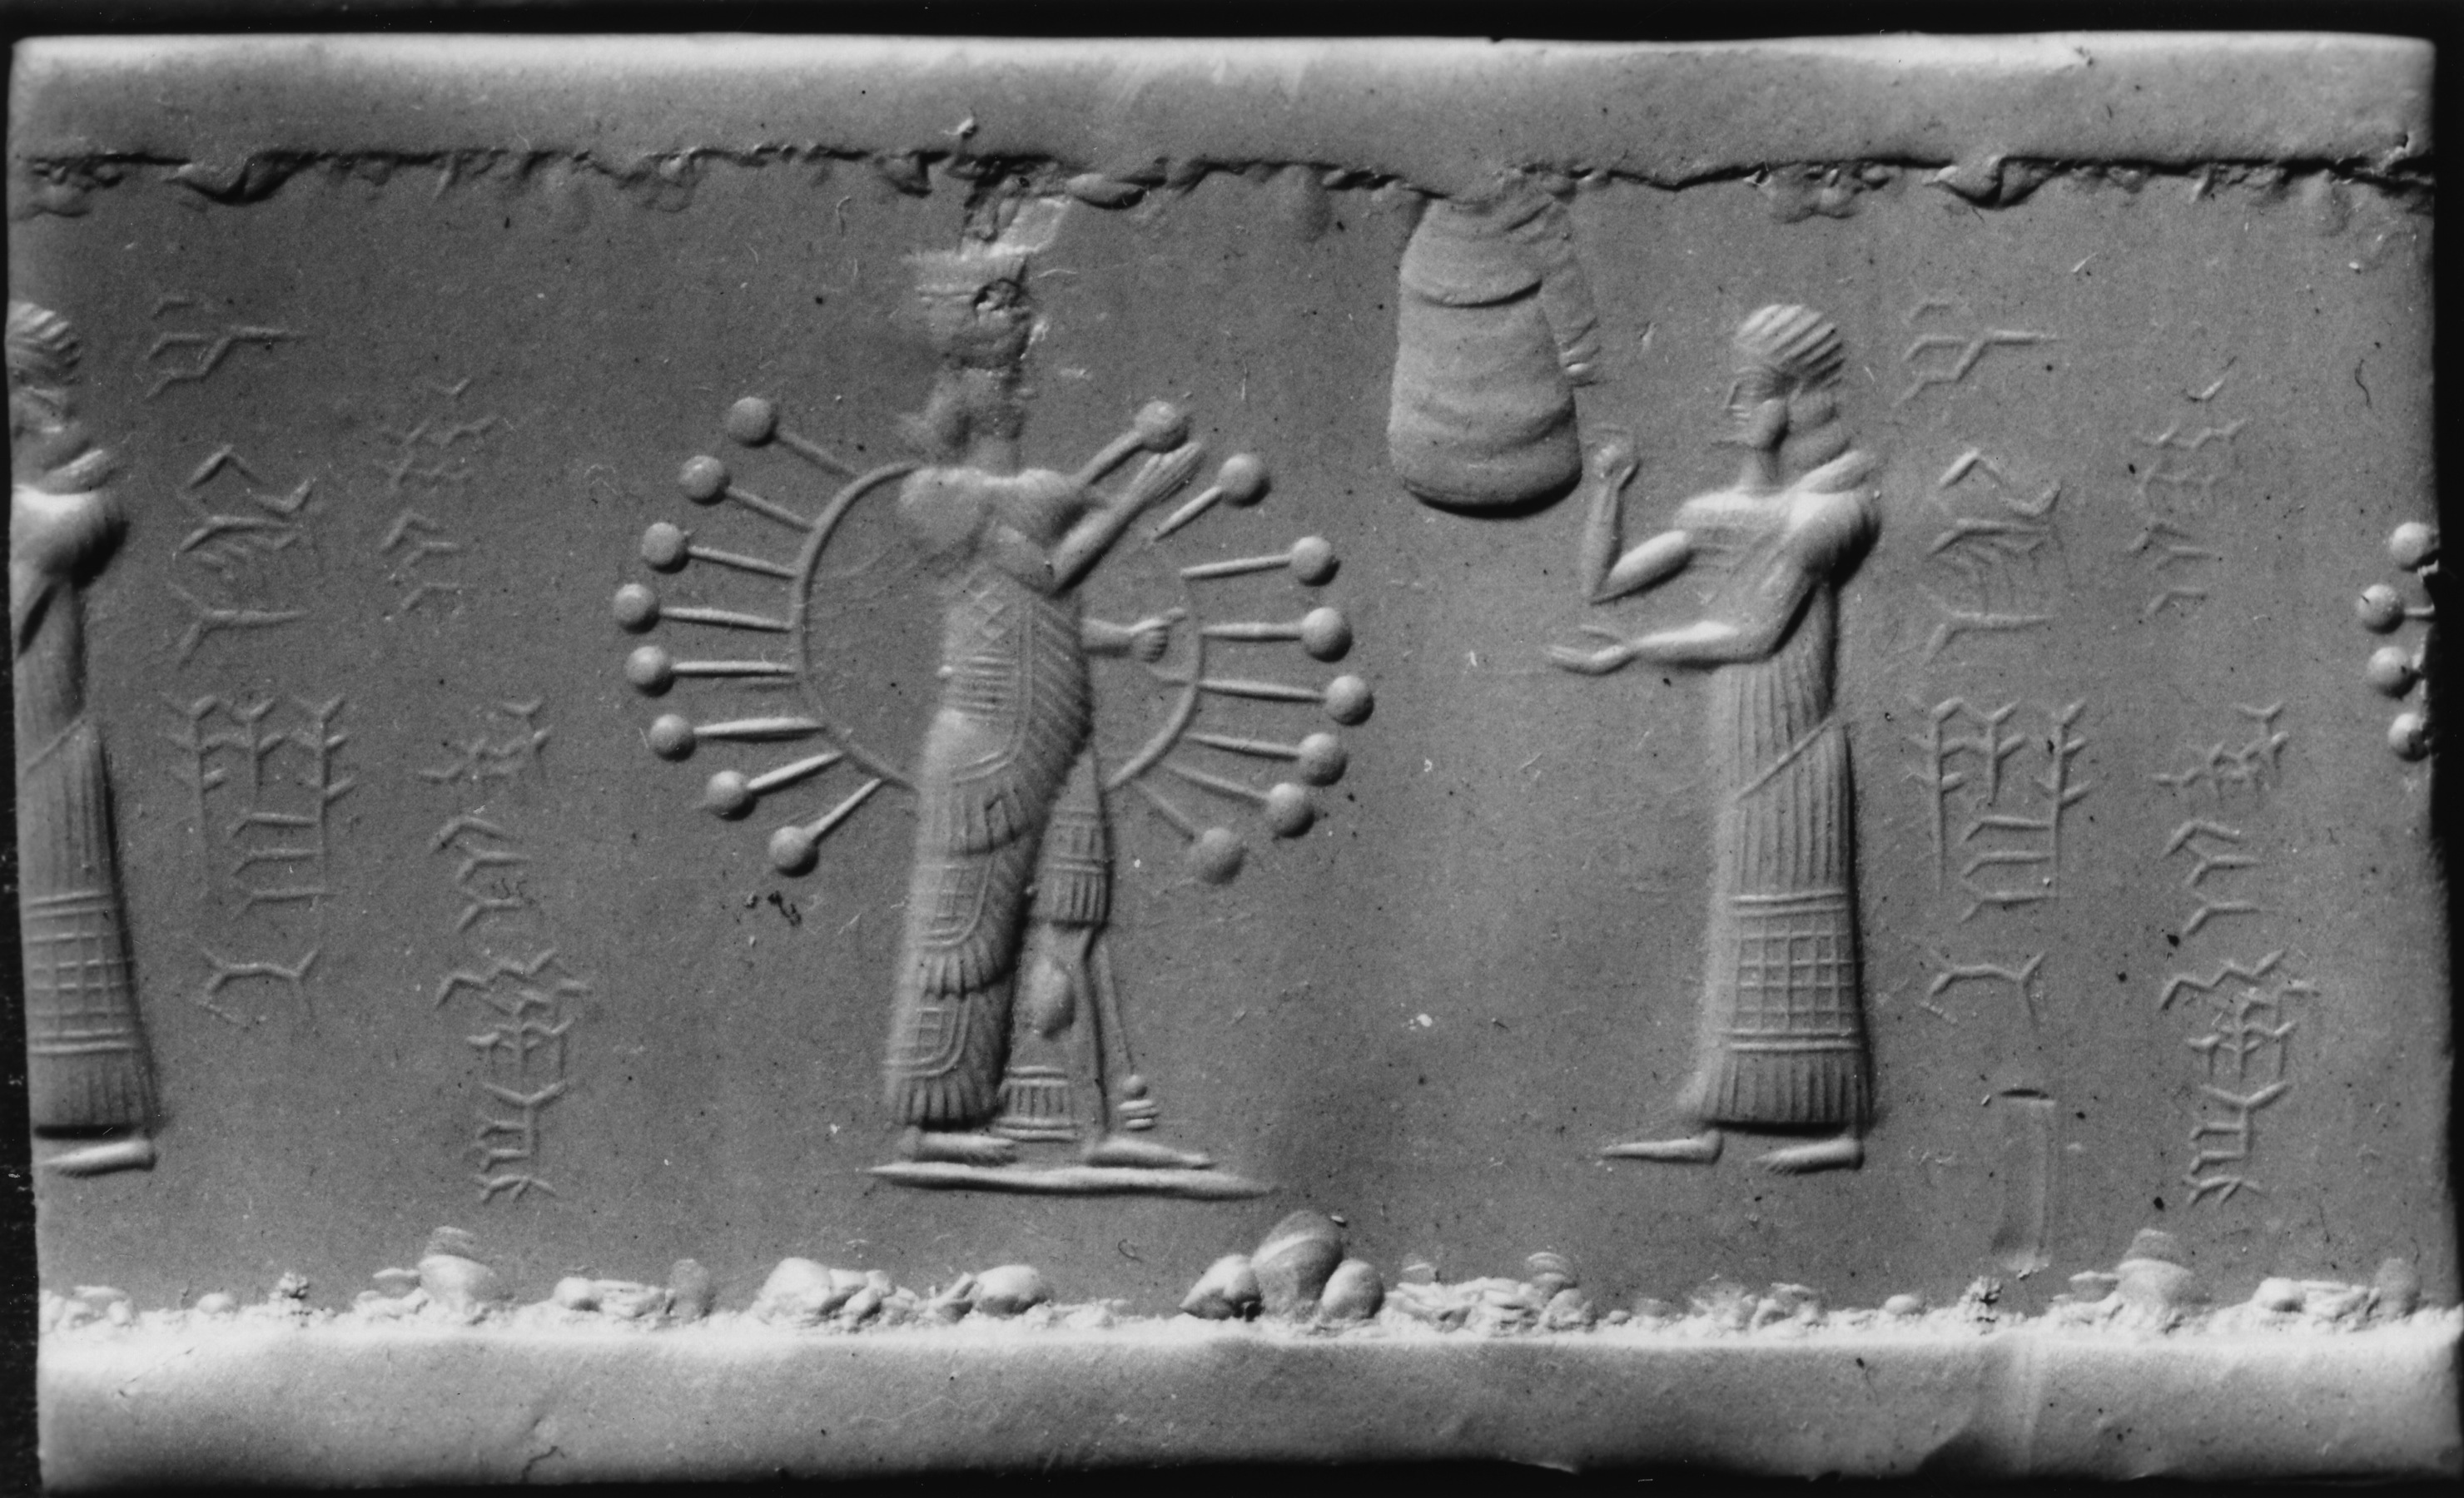 50 - Inanna with all her majesty, & her cautioning grandaunt Ninhursag